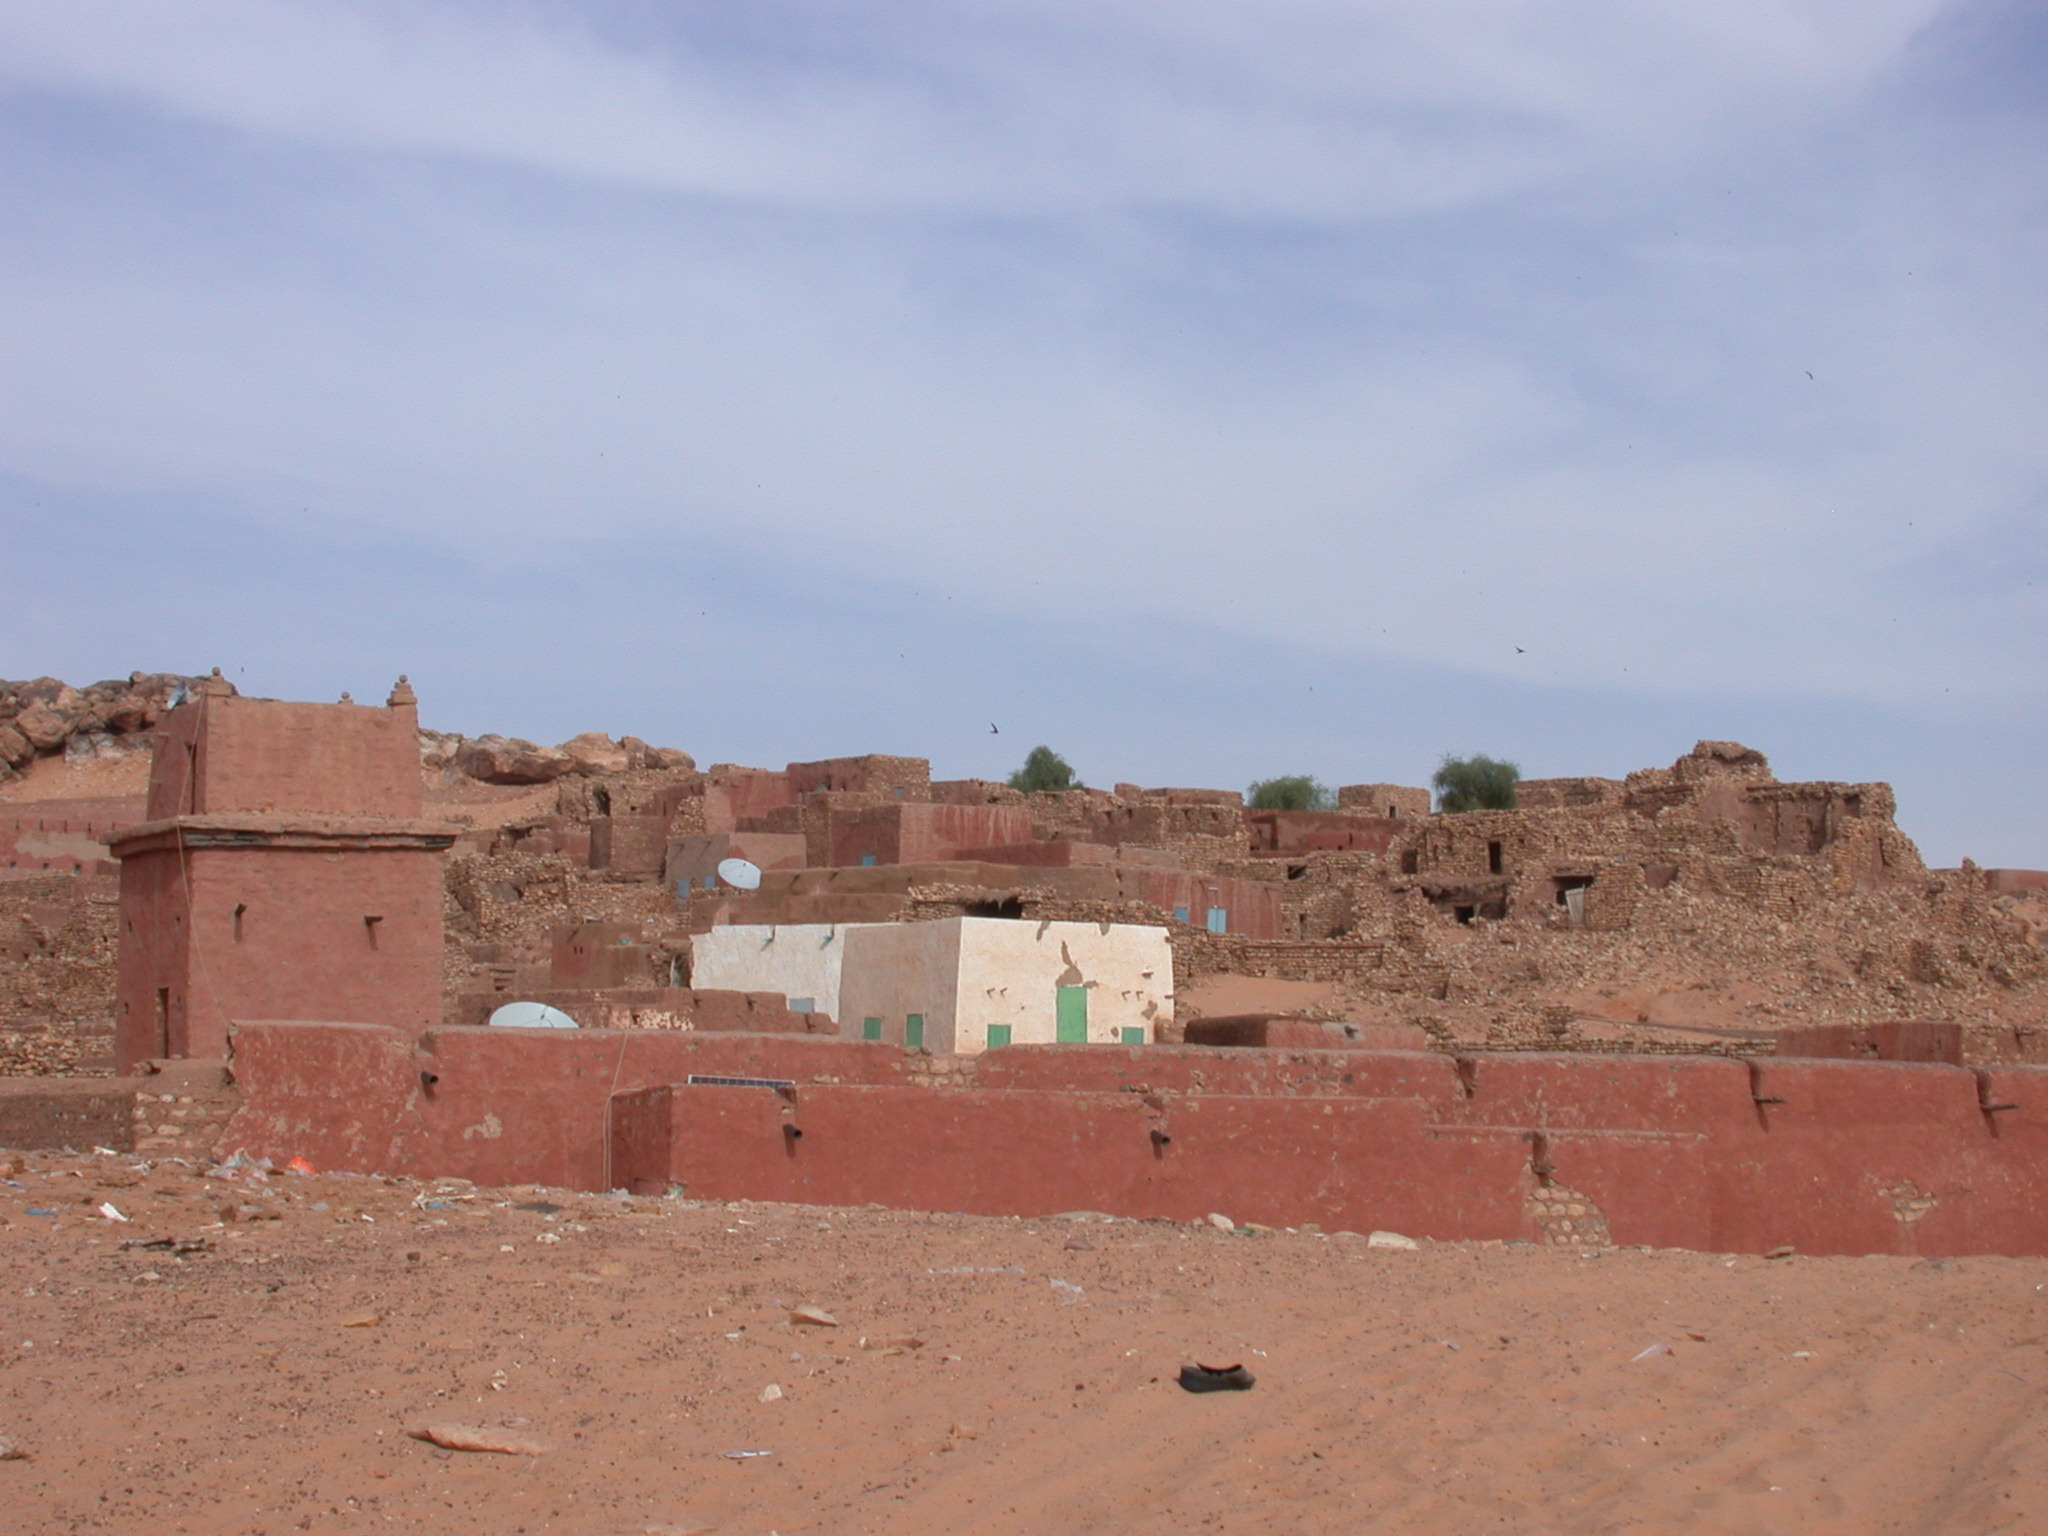 Mosque and City View of Ancient City of Oulata, Mauritania